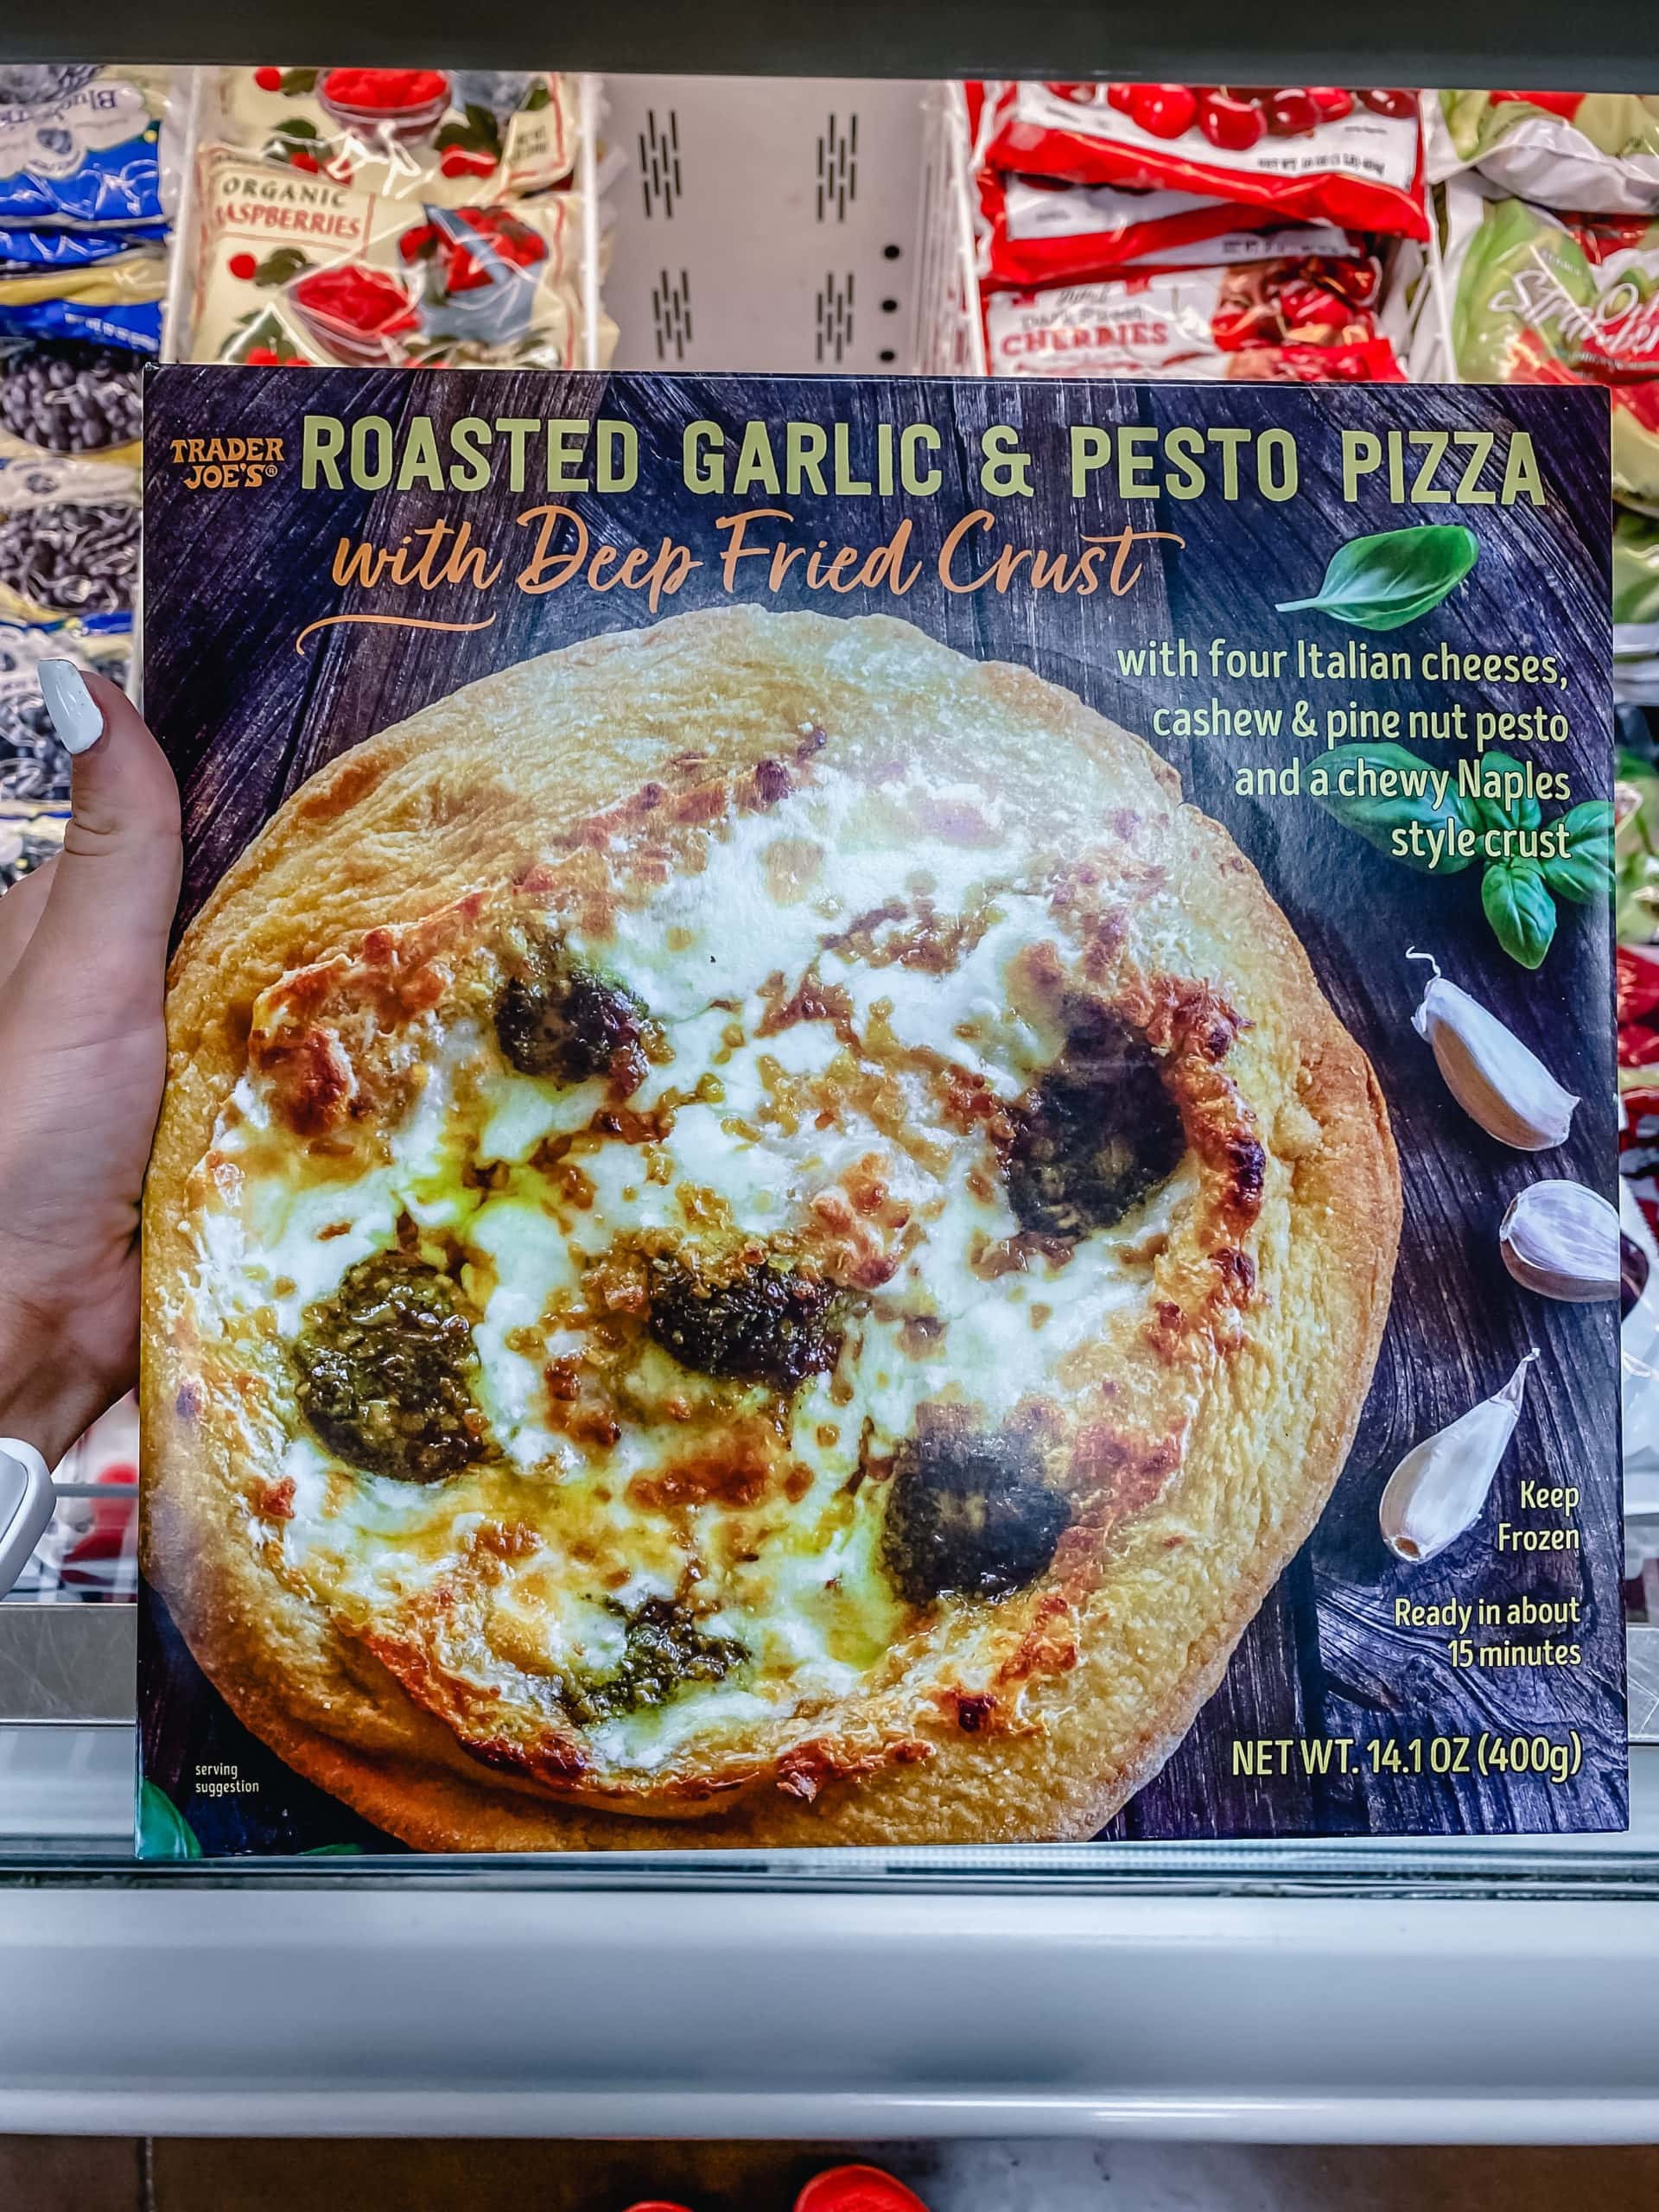 Roasted Garlic and Pesto Pizza with Deep Fried Crust from Trader Joe's. Best Foods to Buy from Trader Joe's.